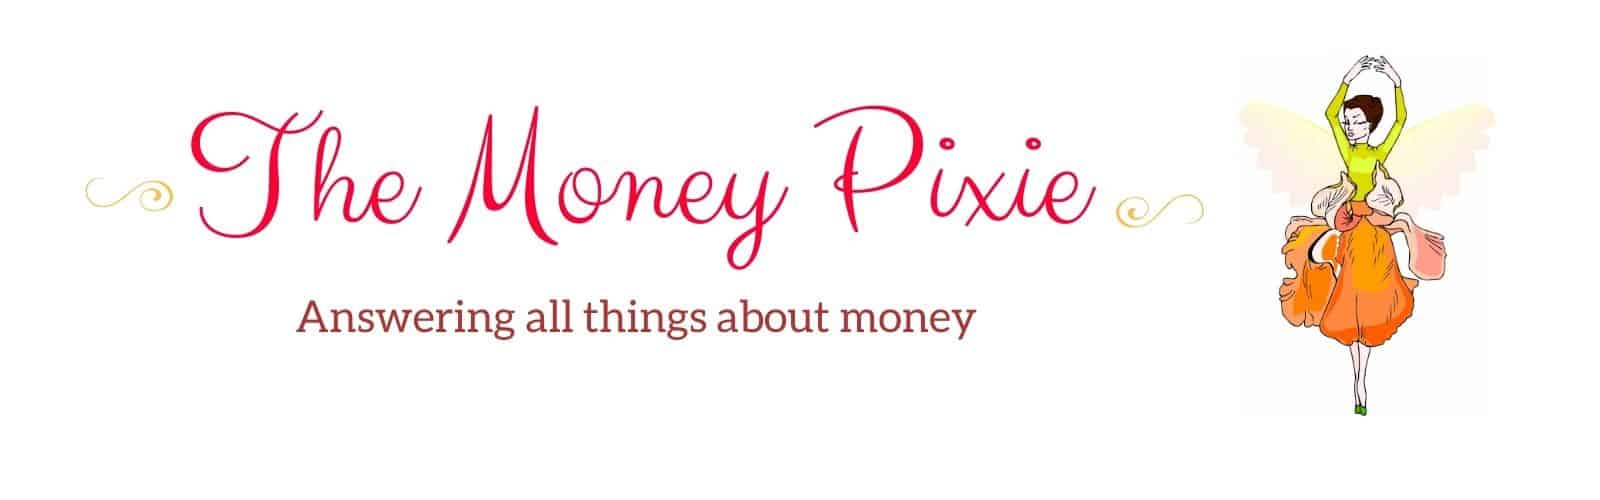 The Money Pixie